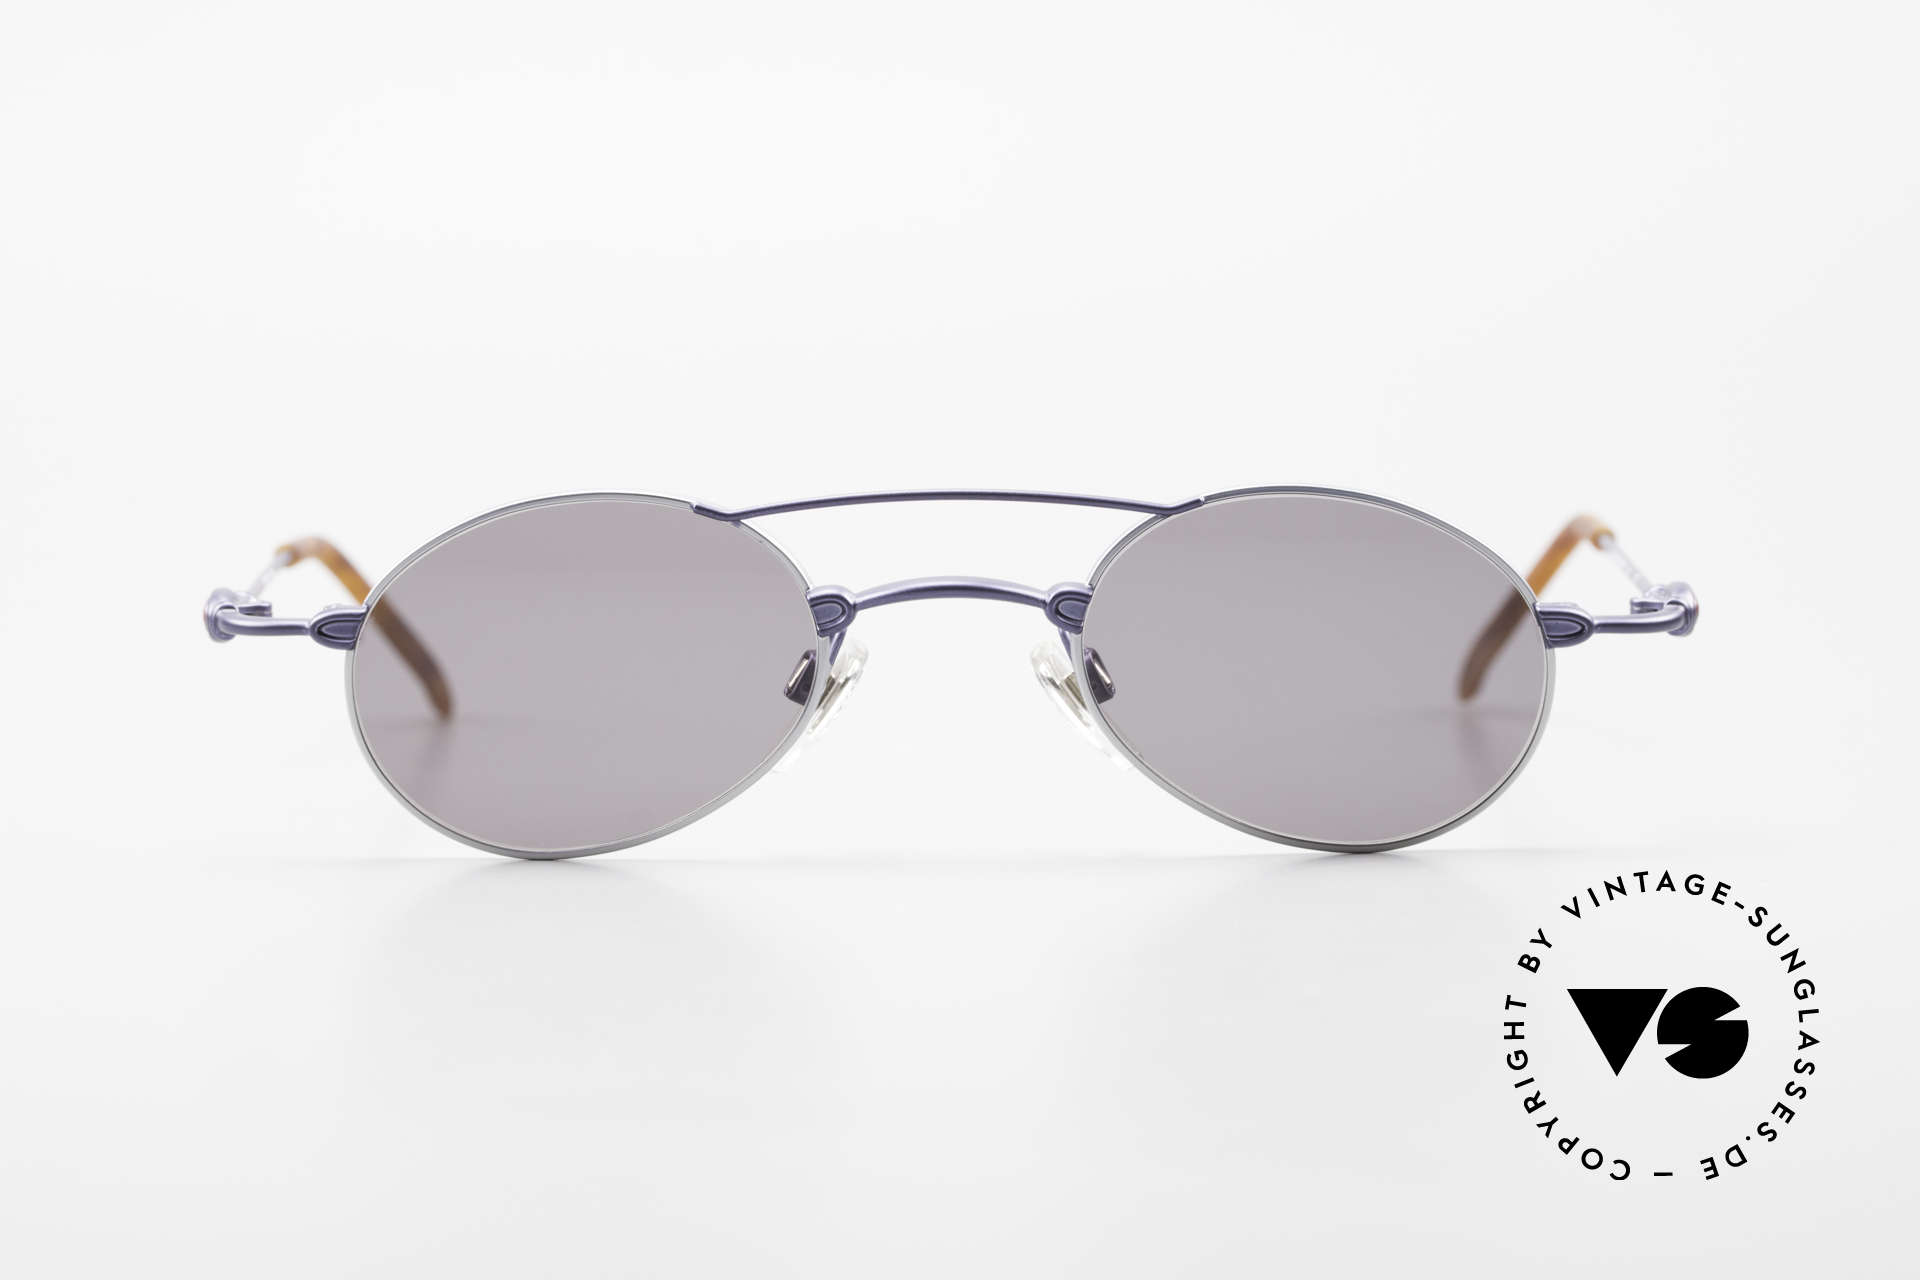 Bugatti 10864 Oval Vintage Sunglasses Men, materials and craftsmanship on top level; size 44°23, Made for Men